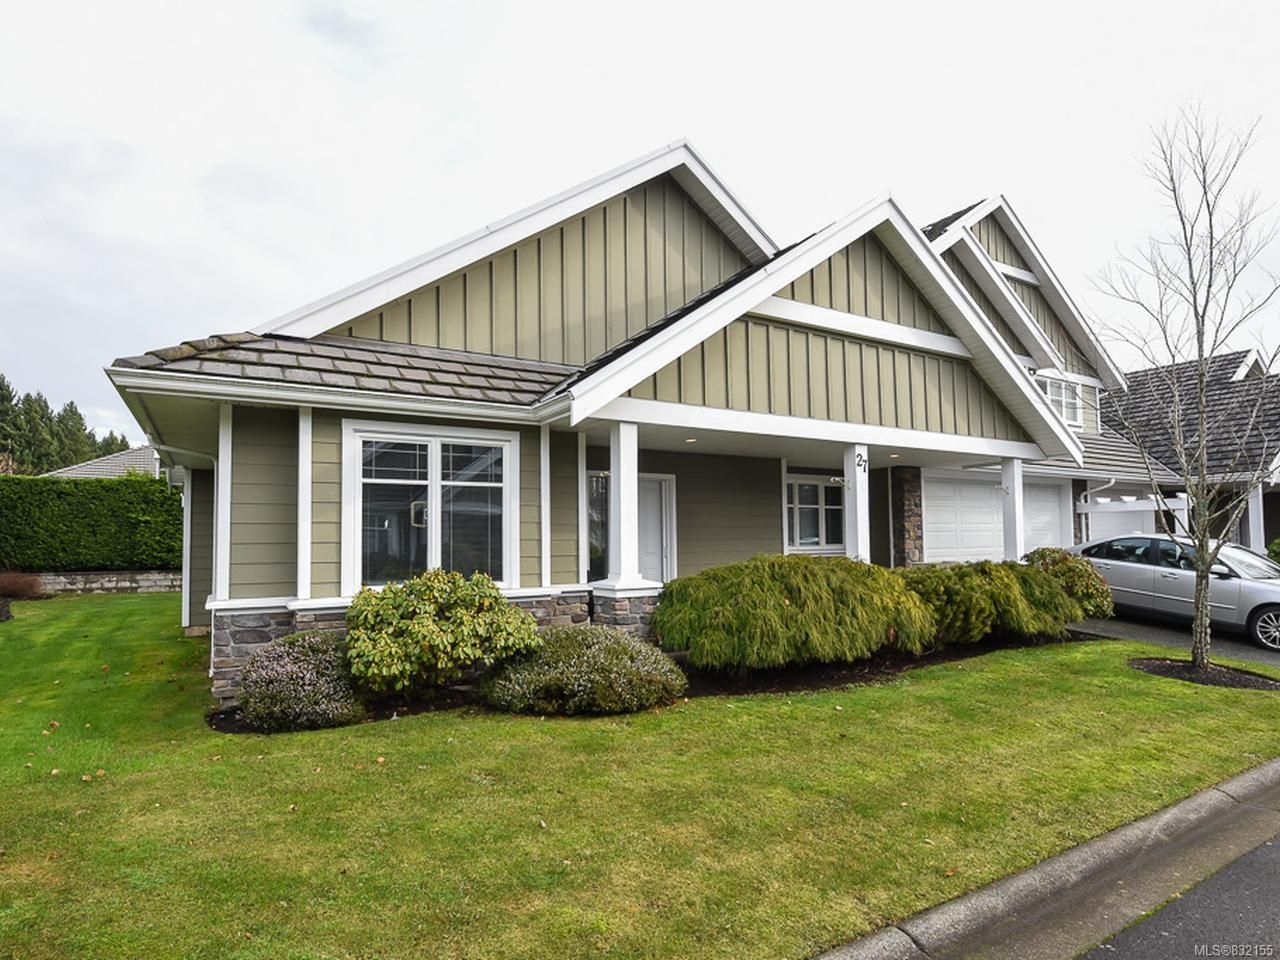 Main Photo: 27 2727 BRISTOL Way in COURTENAY: CV Crown Isle Row/Townhouse for sale (Comox Valley)  : MLS®# 832155